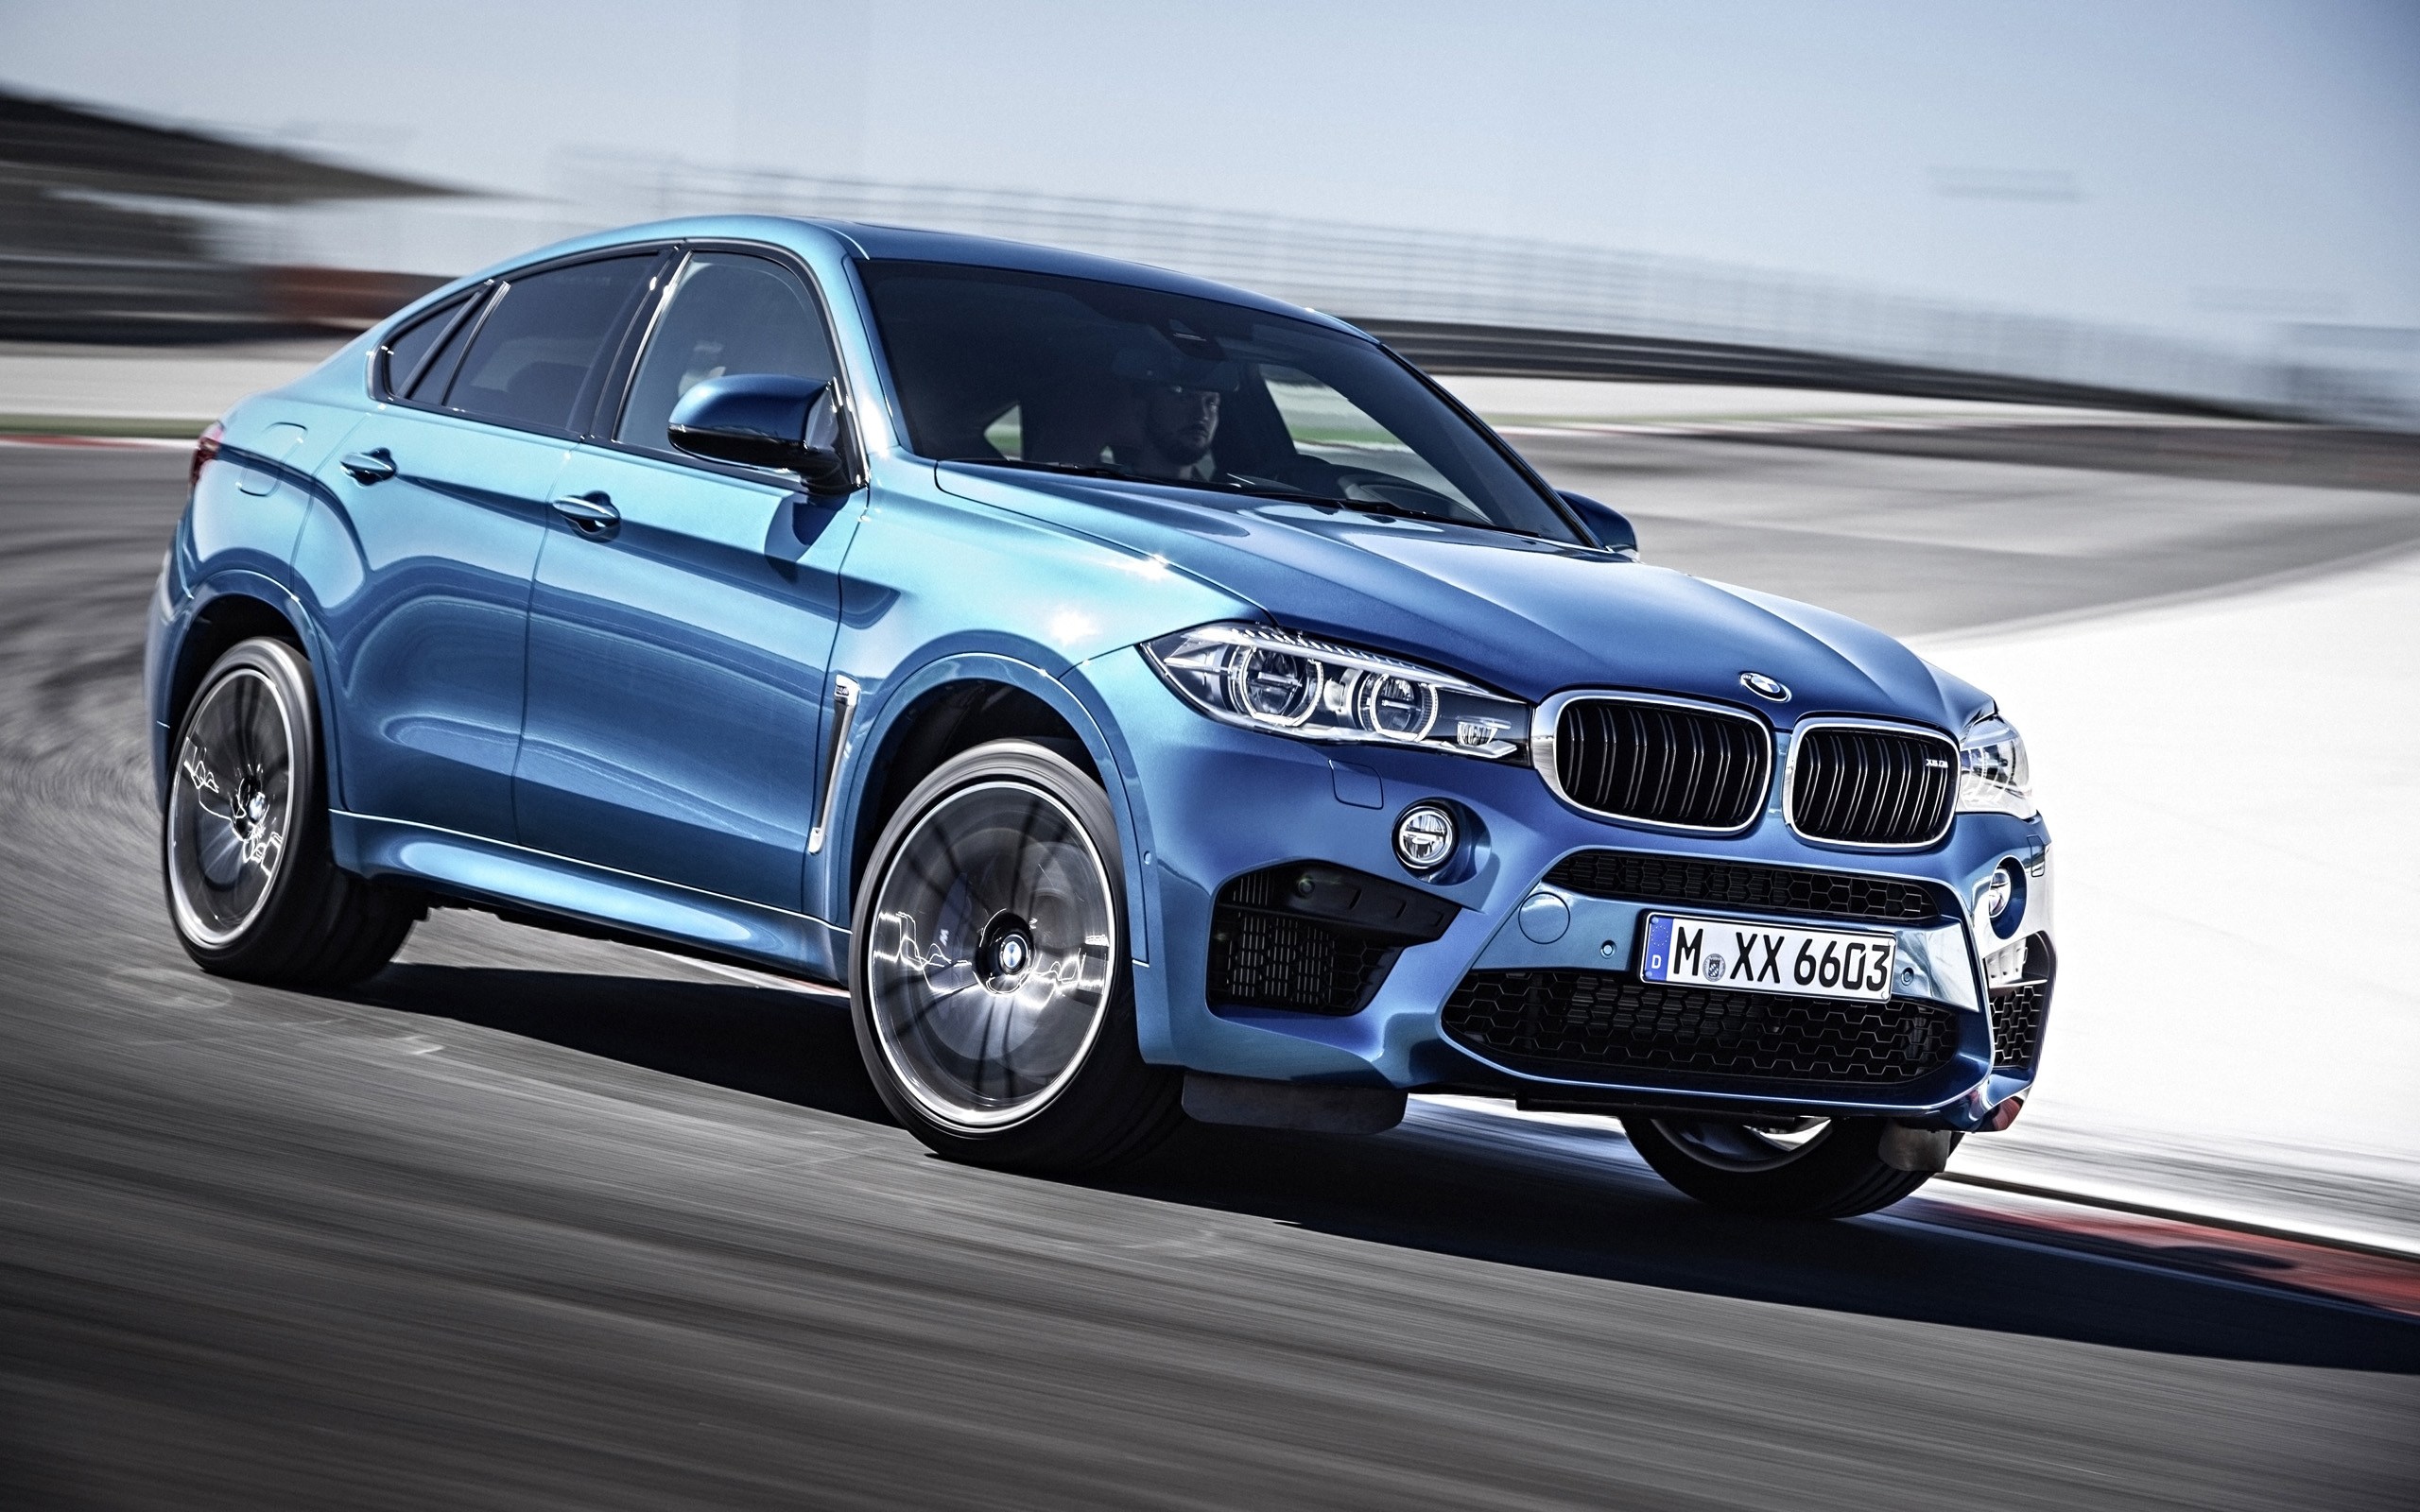 2015 BMW X6 M Wallpaper | HD Car Wallpapers